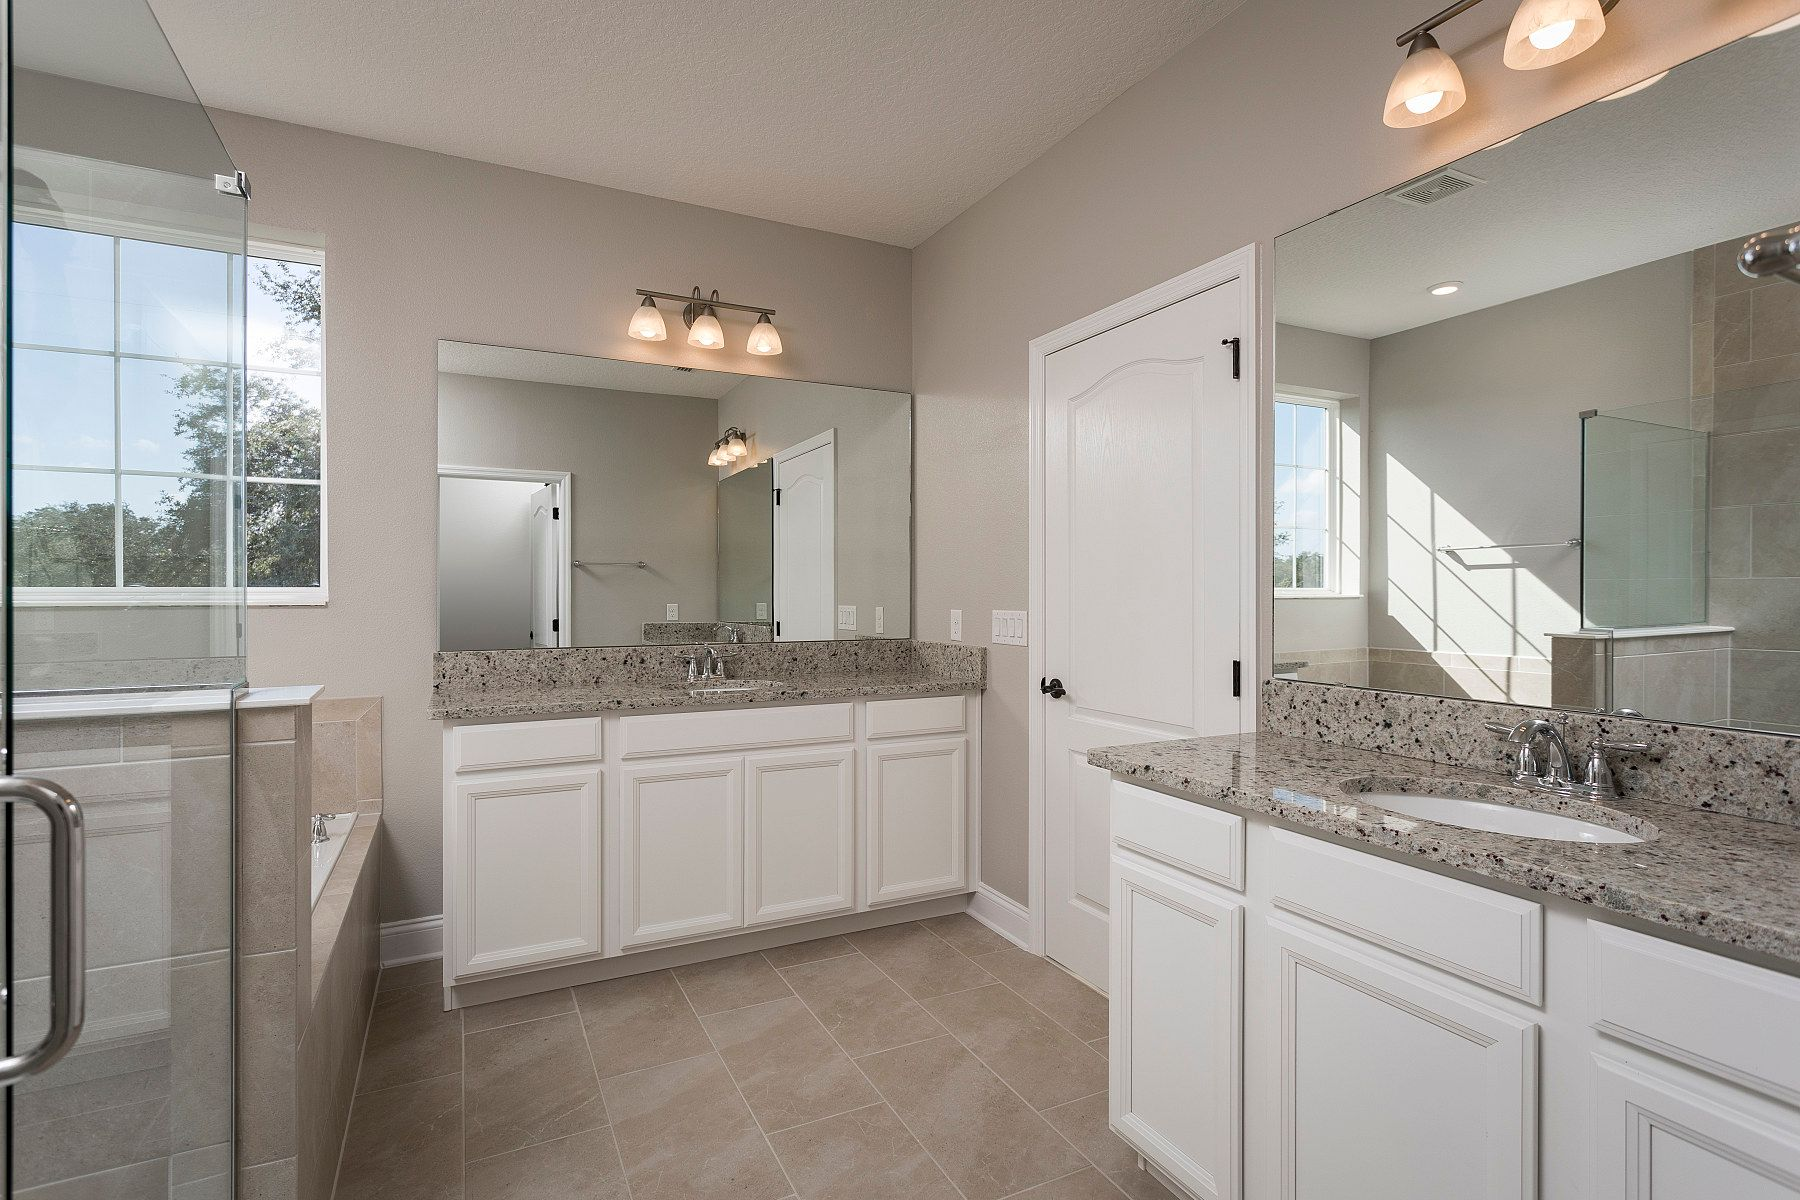 Bathroom featured in the Chatham By M/I Homes in Daytona Beach, FL